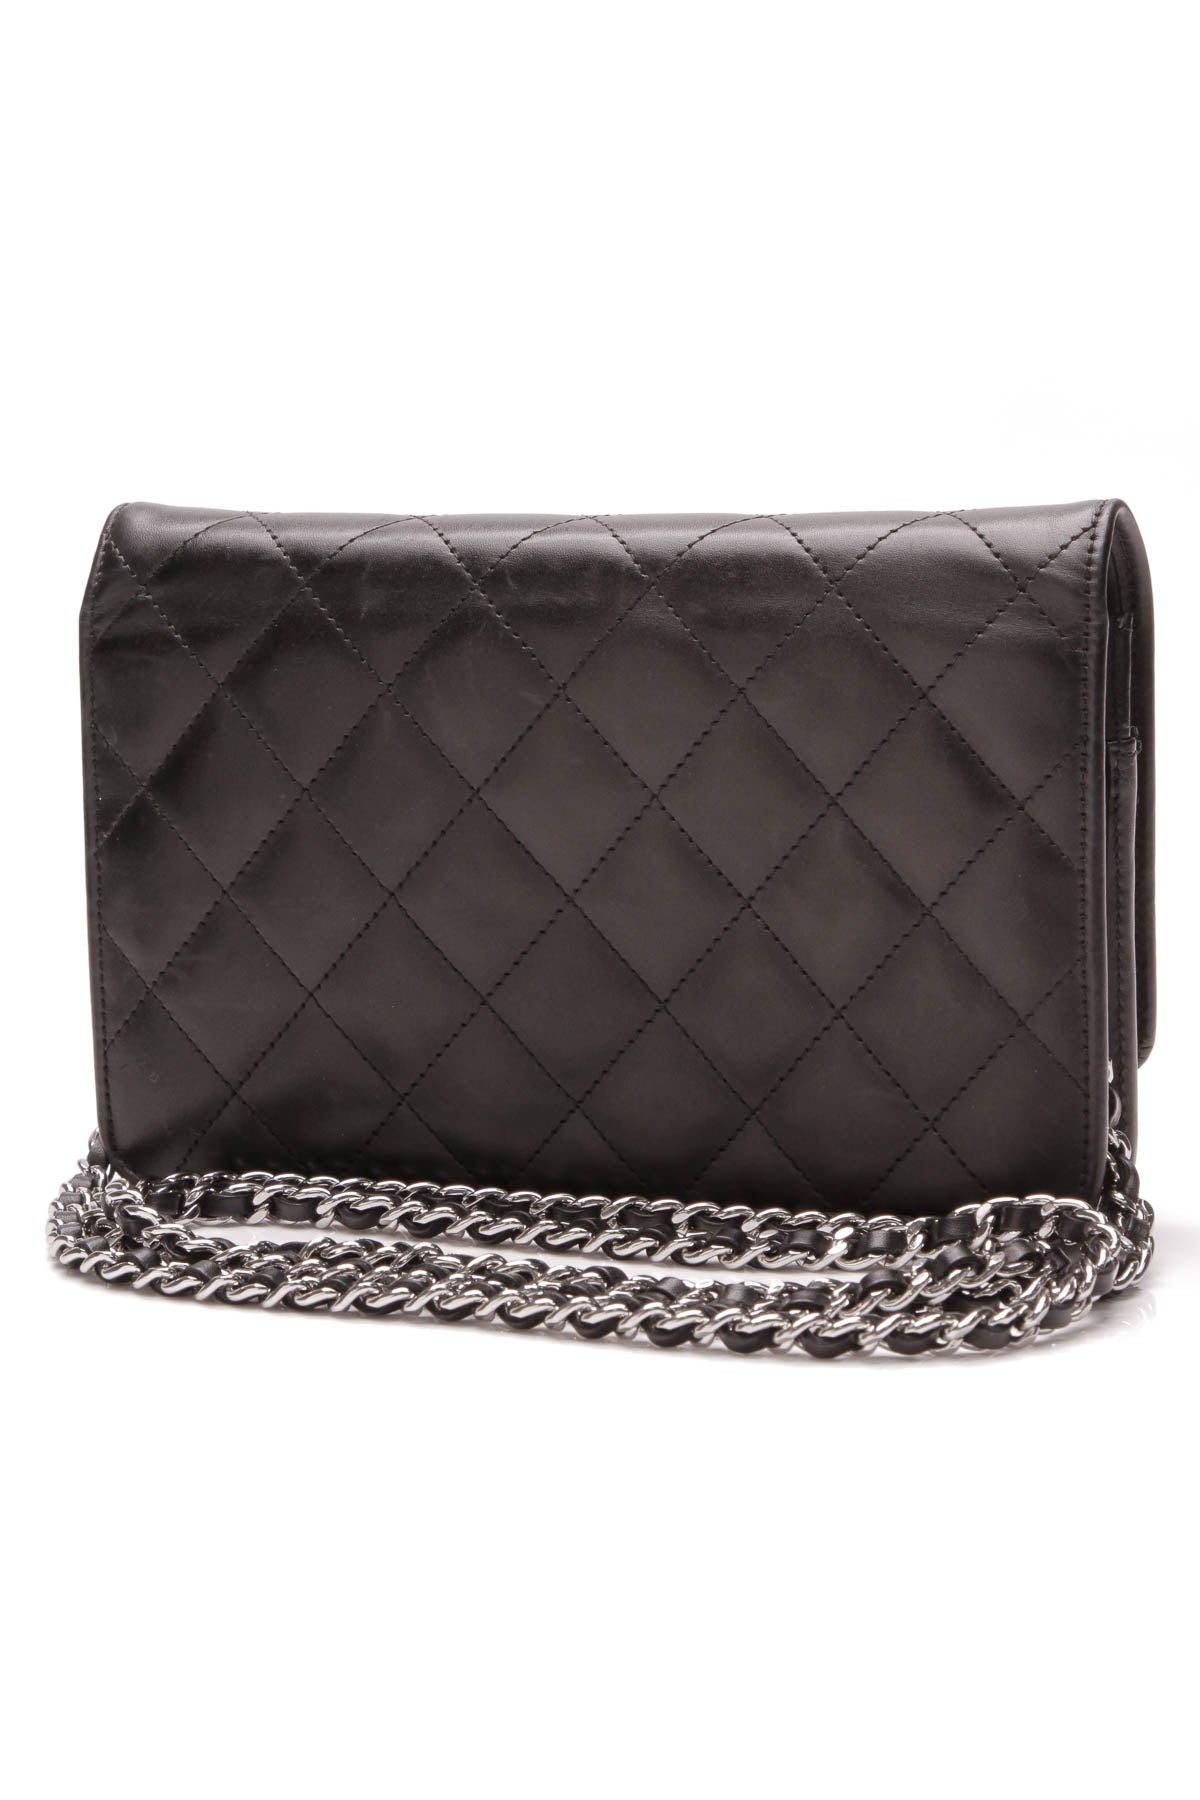 4f28b720ad80 Shop Chanel Bag, Wallets and Accessories - Couture USA